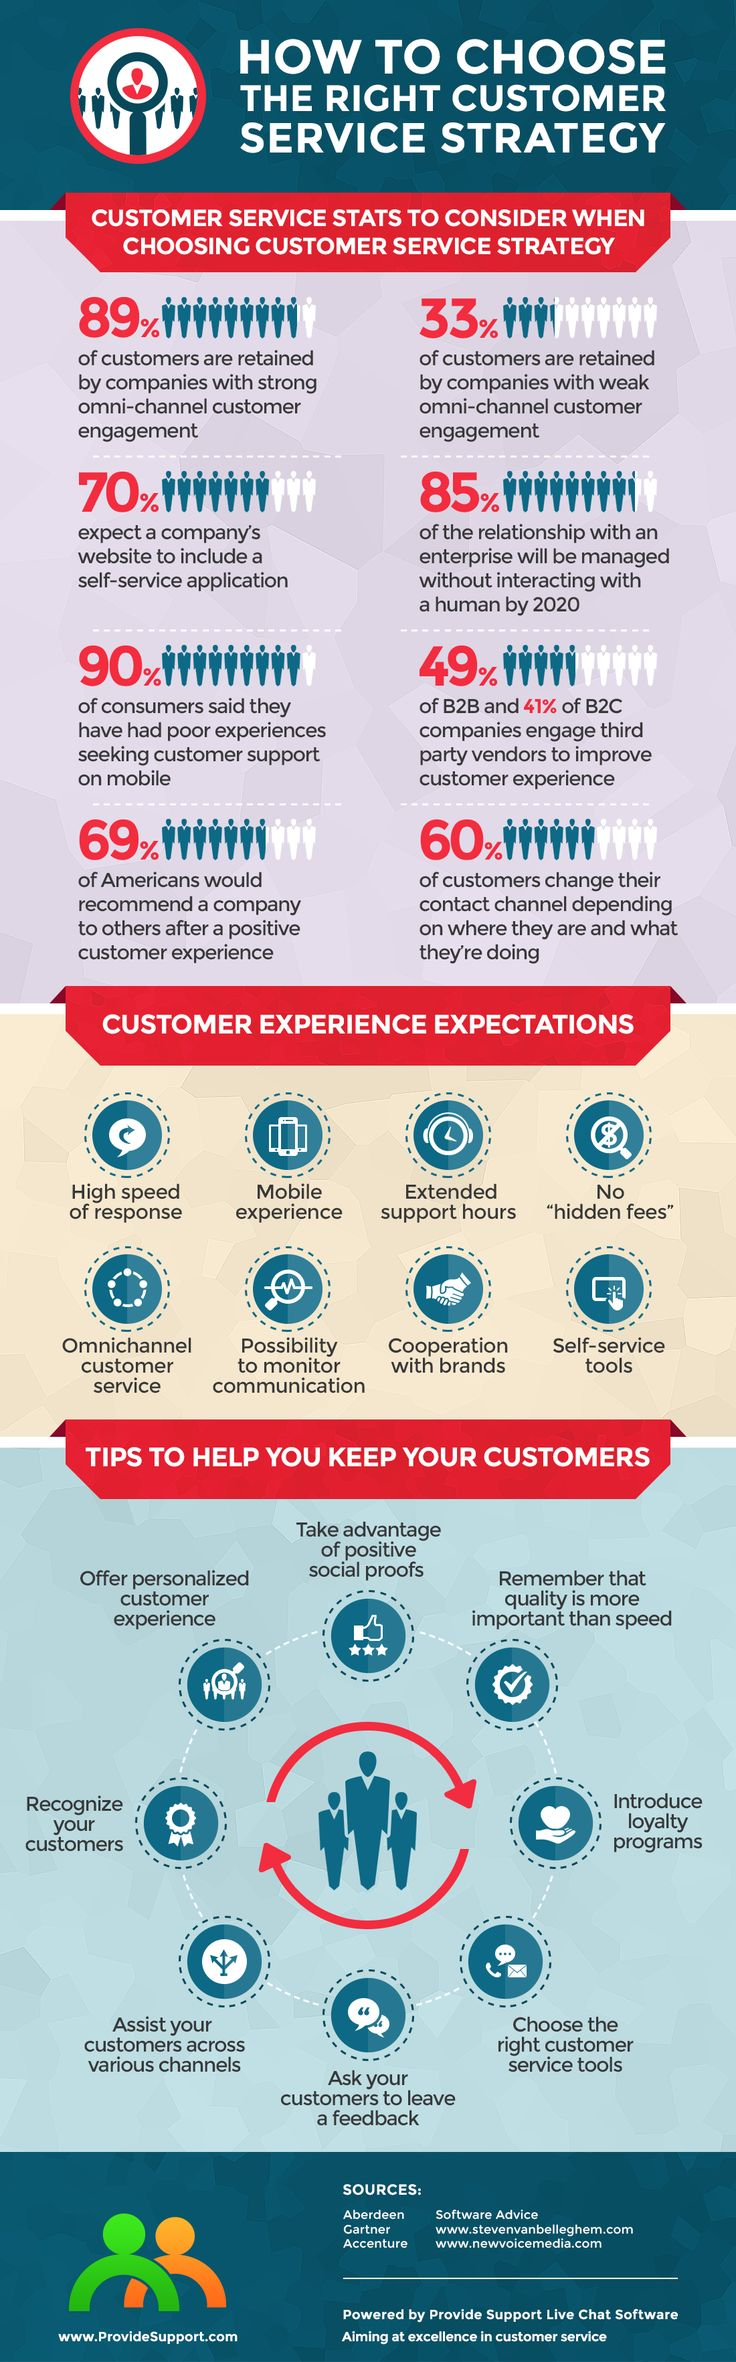 Customer service the right way - 4 6